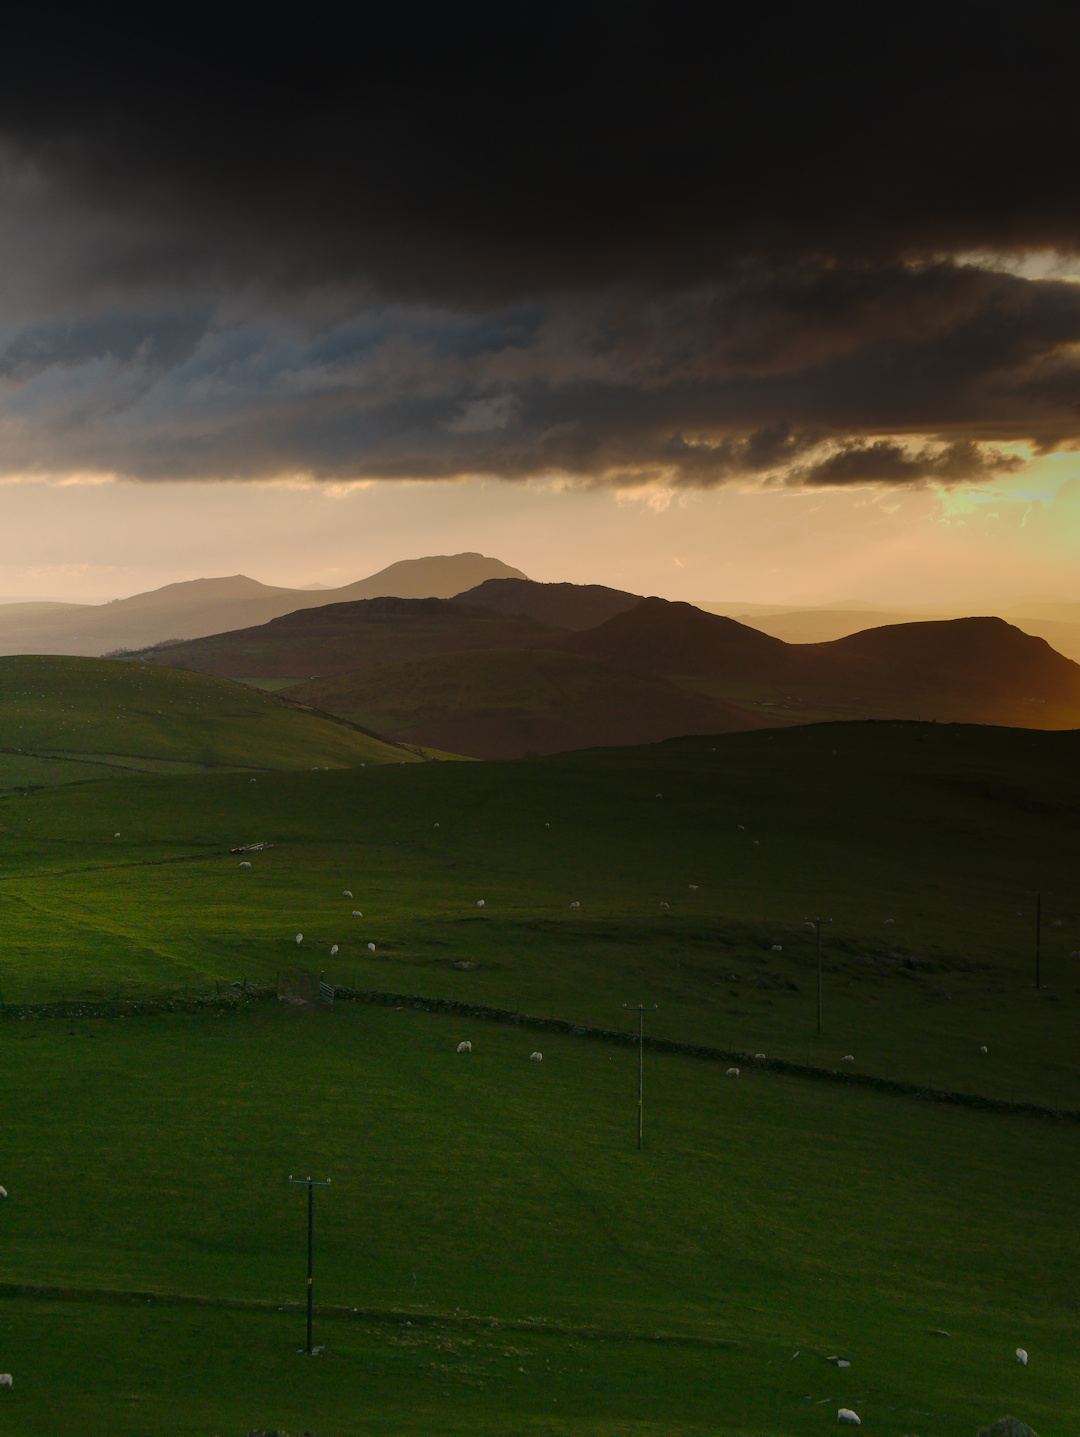 Llyn Peninsula Sunset with Farmland and Mountains